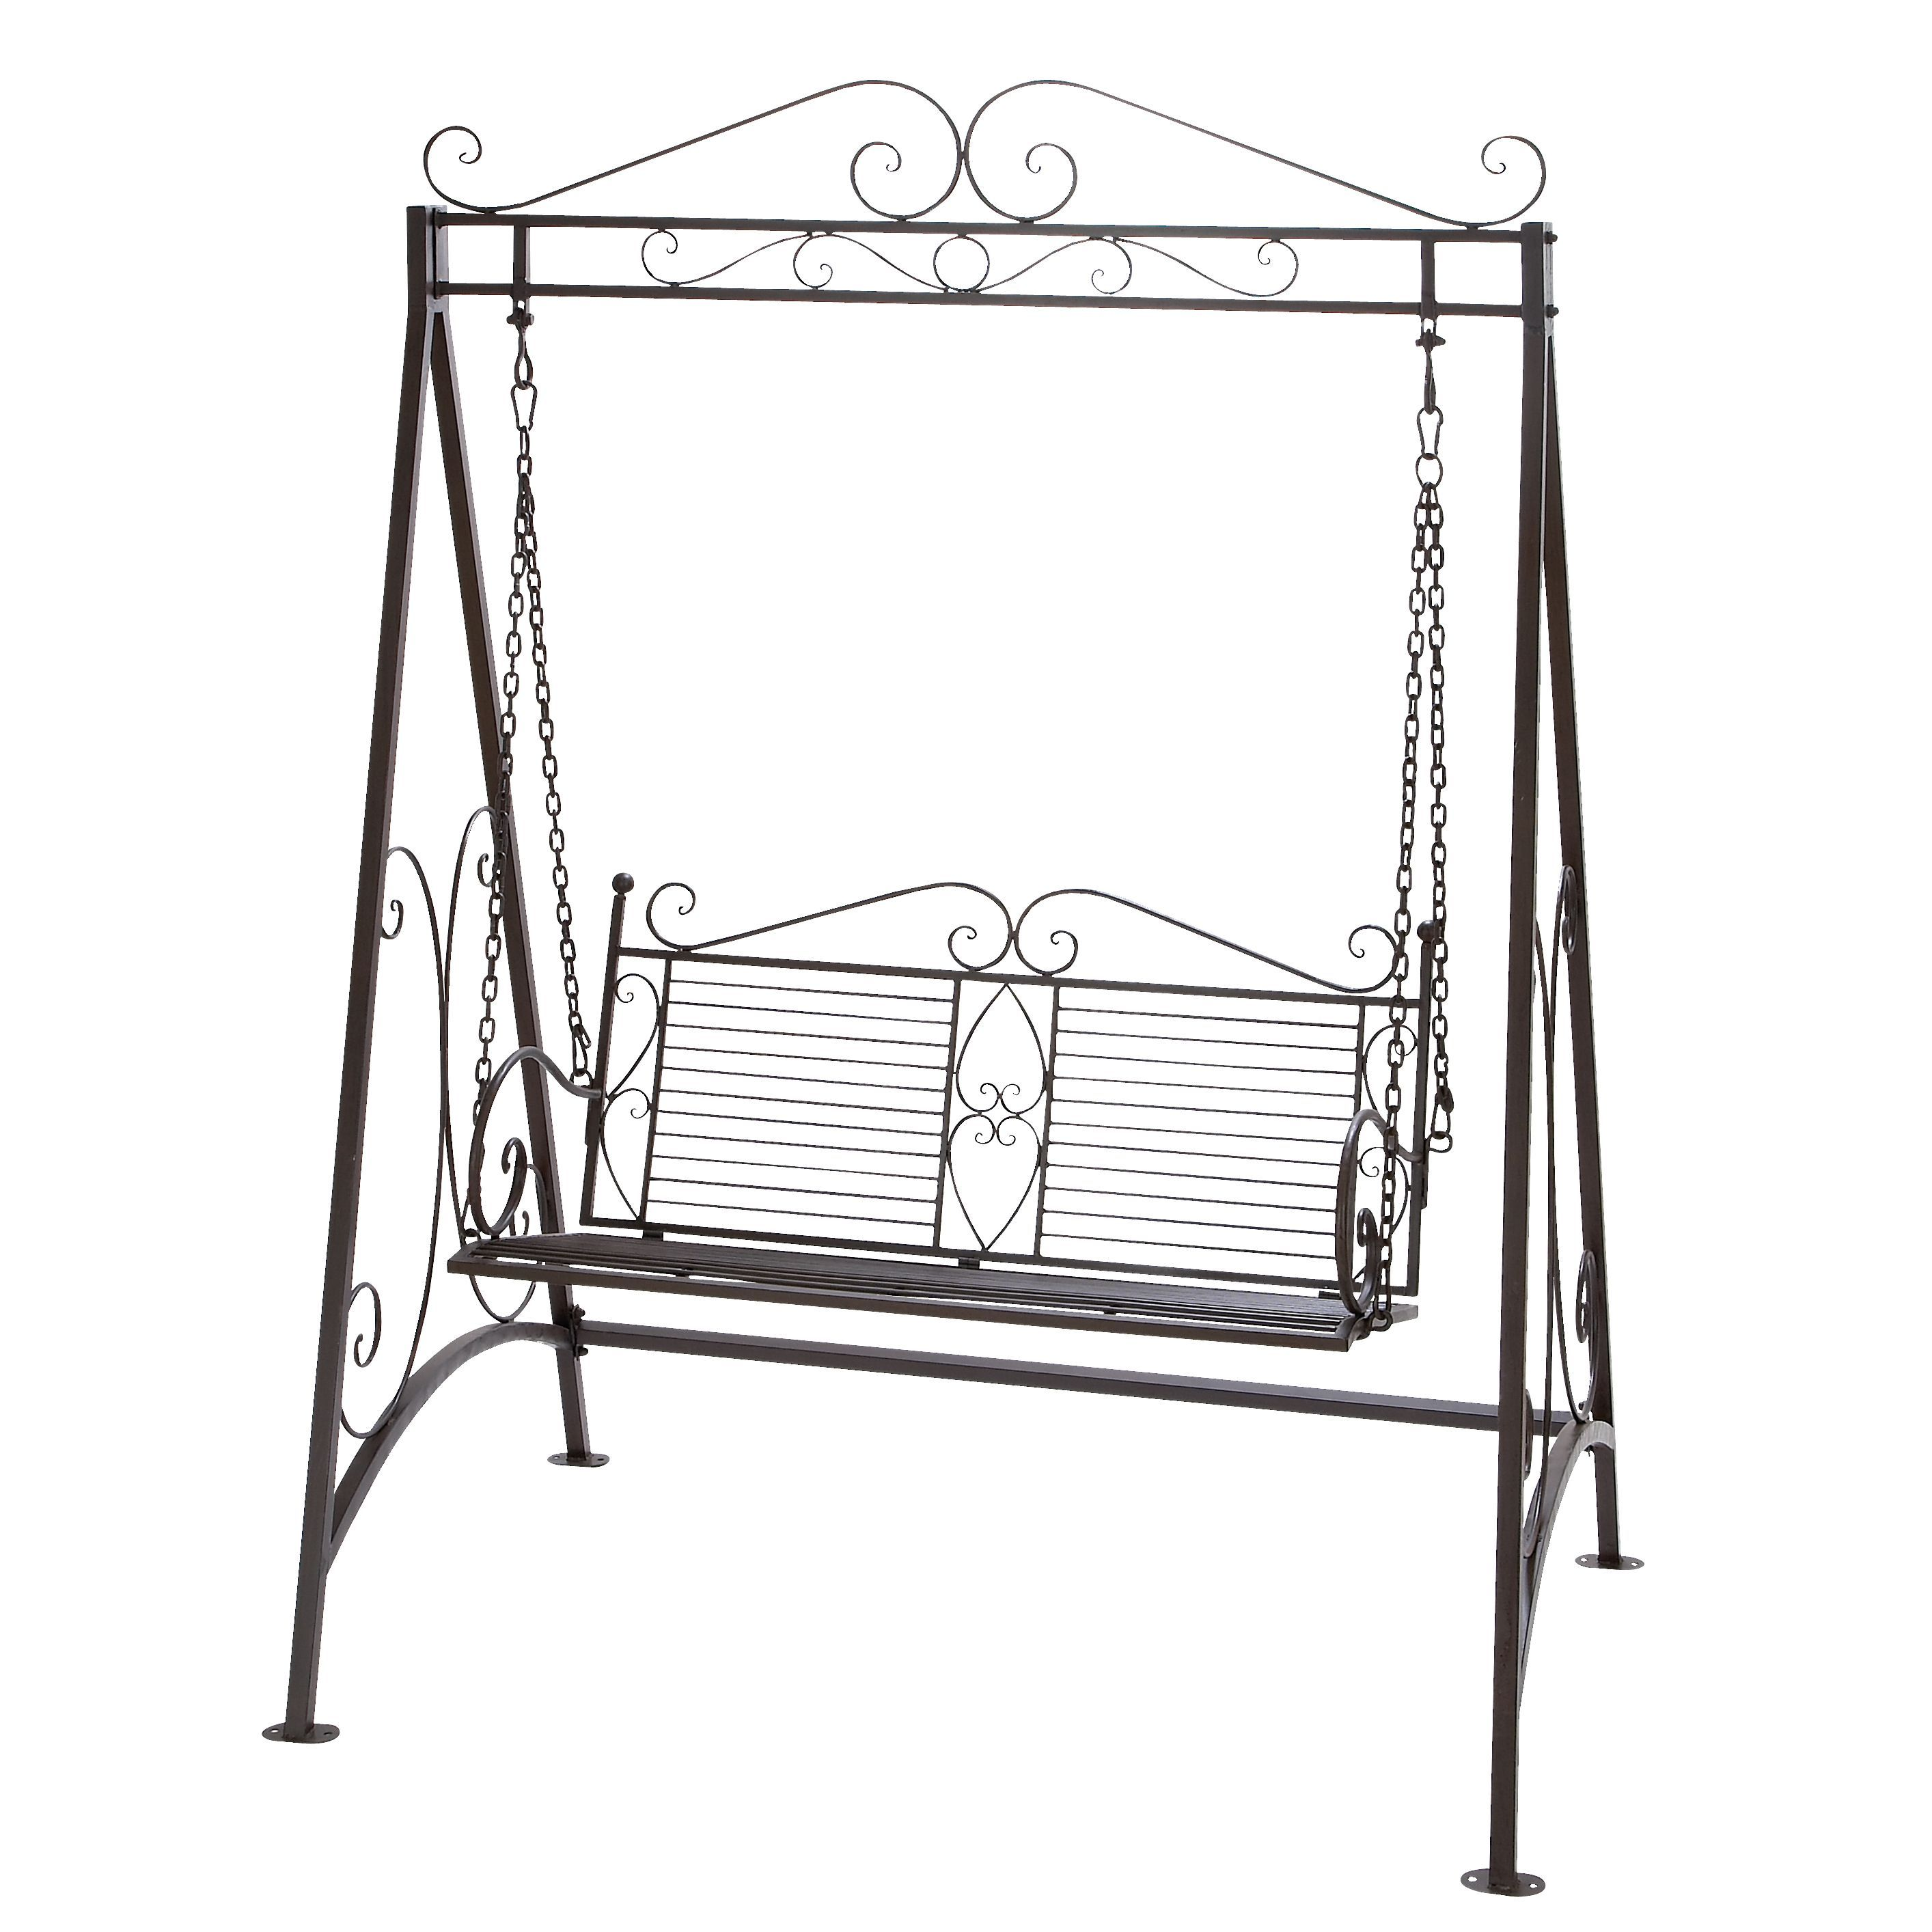 This Beautiful Metal Garden Swing Adds A Touch Of Charm To Your Outdoor  Space. Place